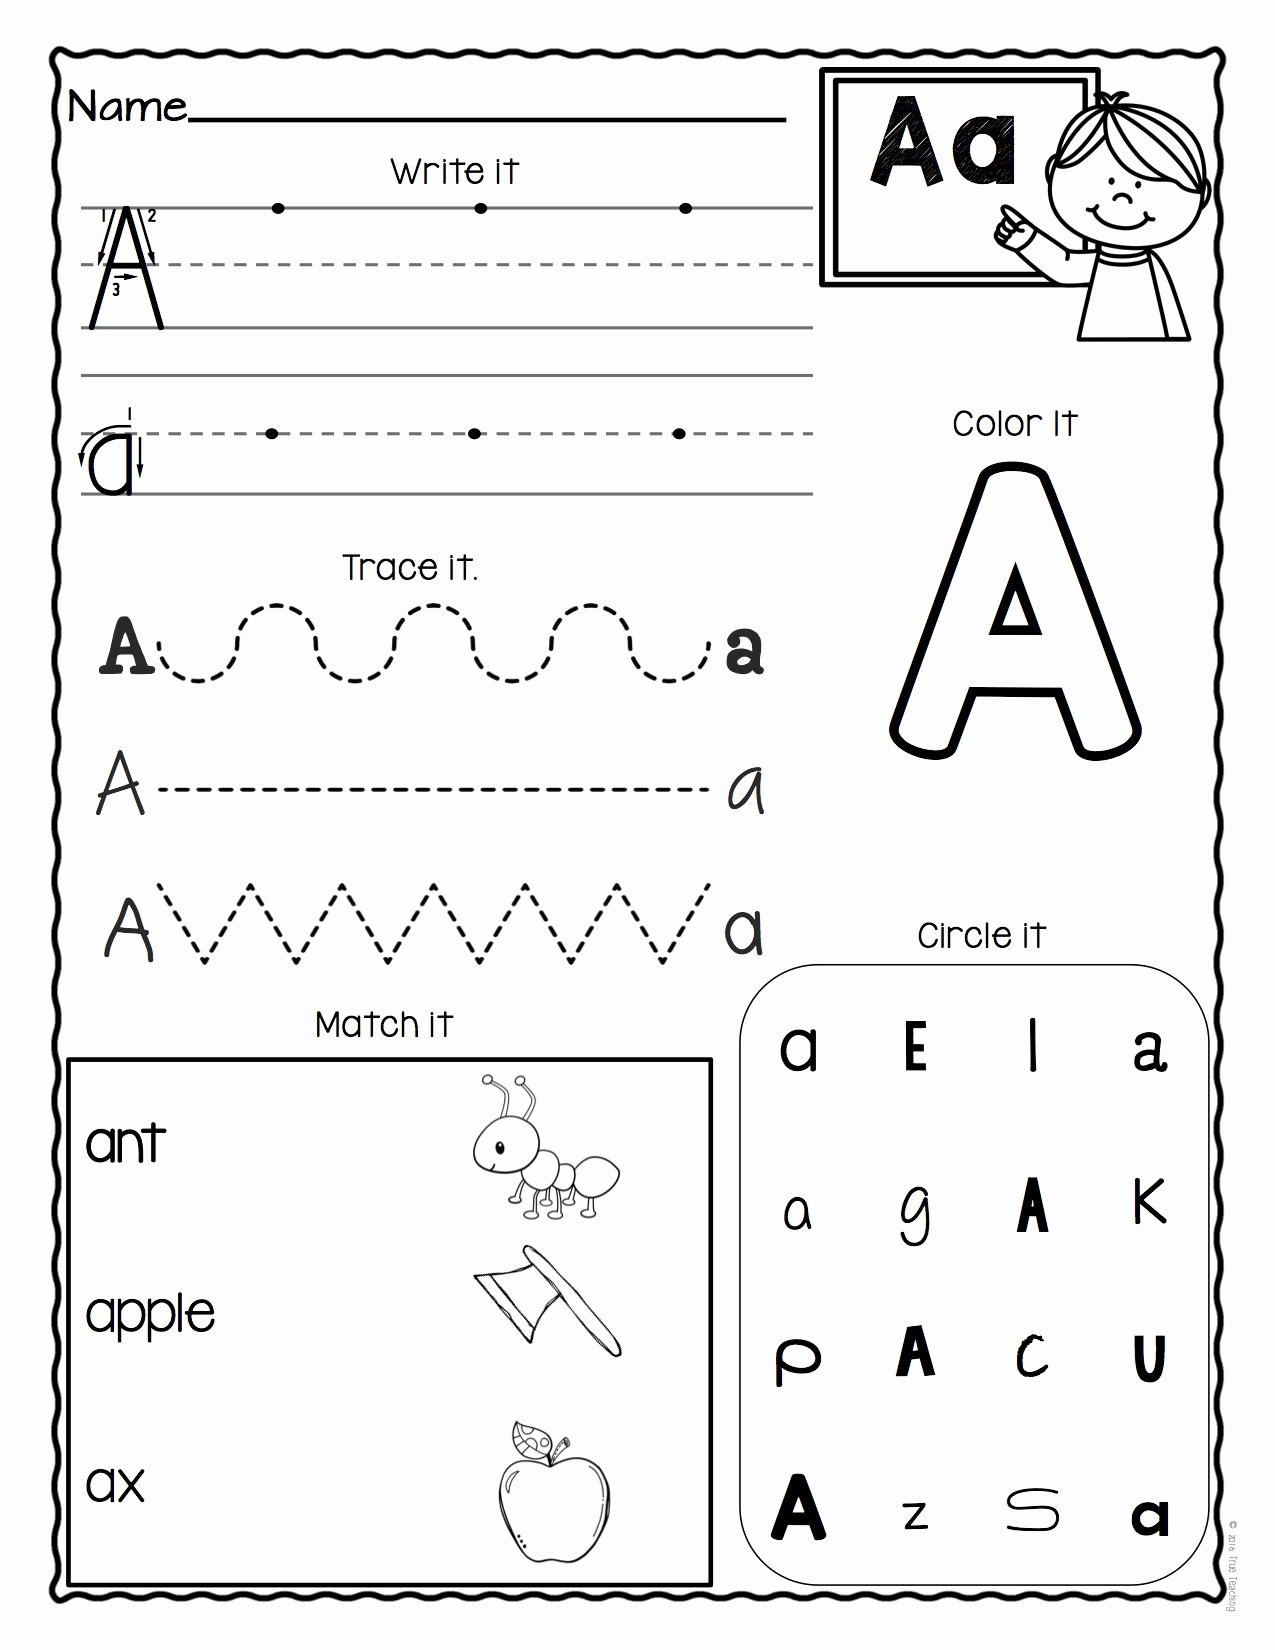 Letter Worksheets for Preschoolers Printable A Z Letter Worksheets Set 3